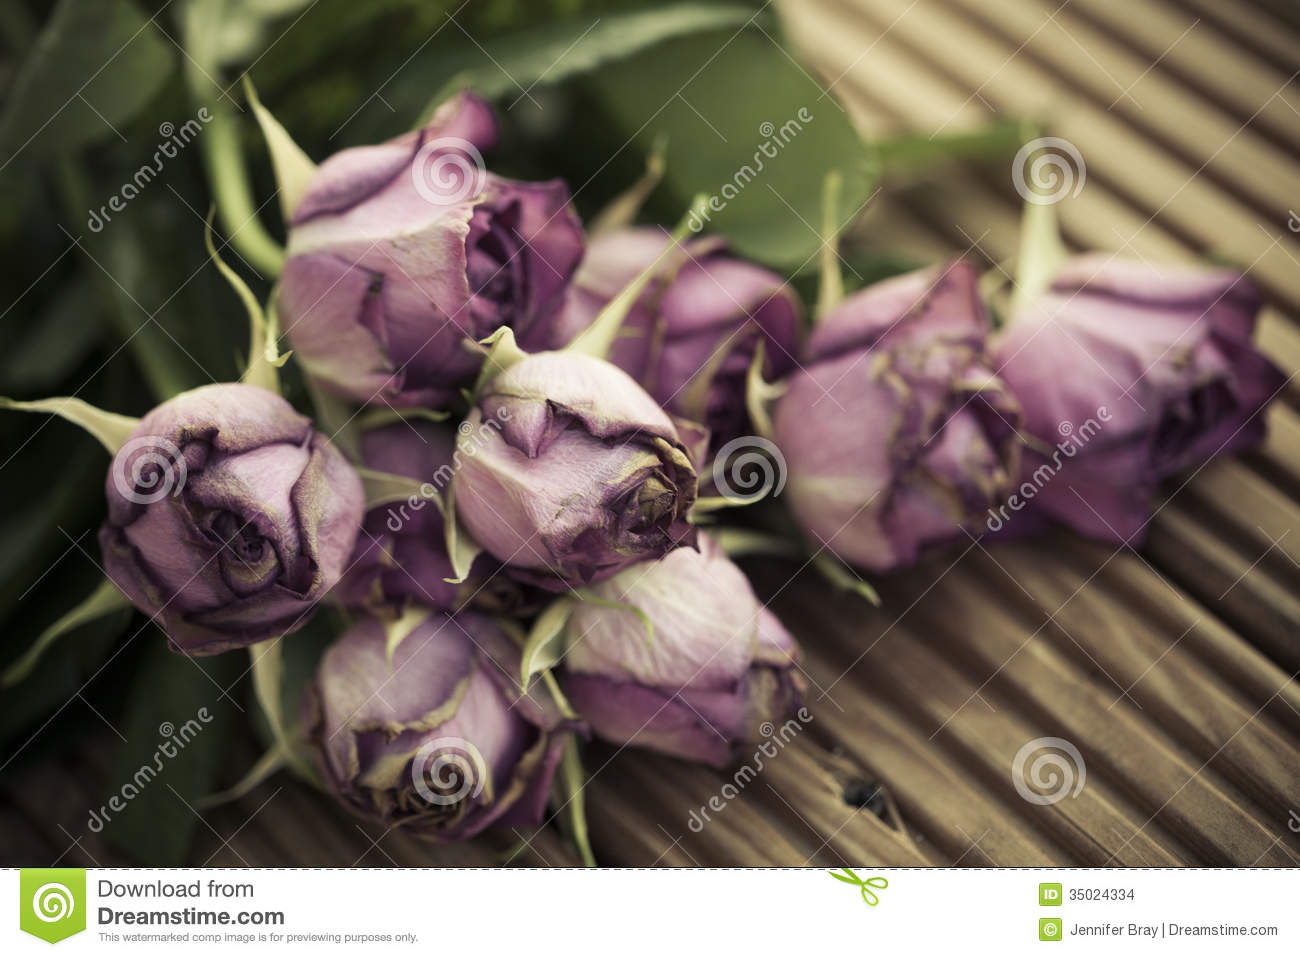 Dying Wilted Roses On Wooden Decking Background Stock Images  Image 35024334